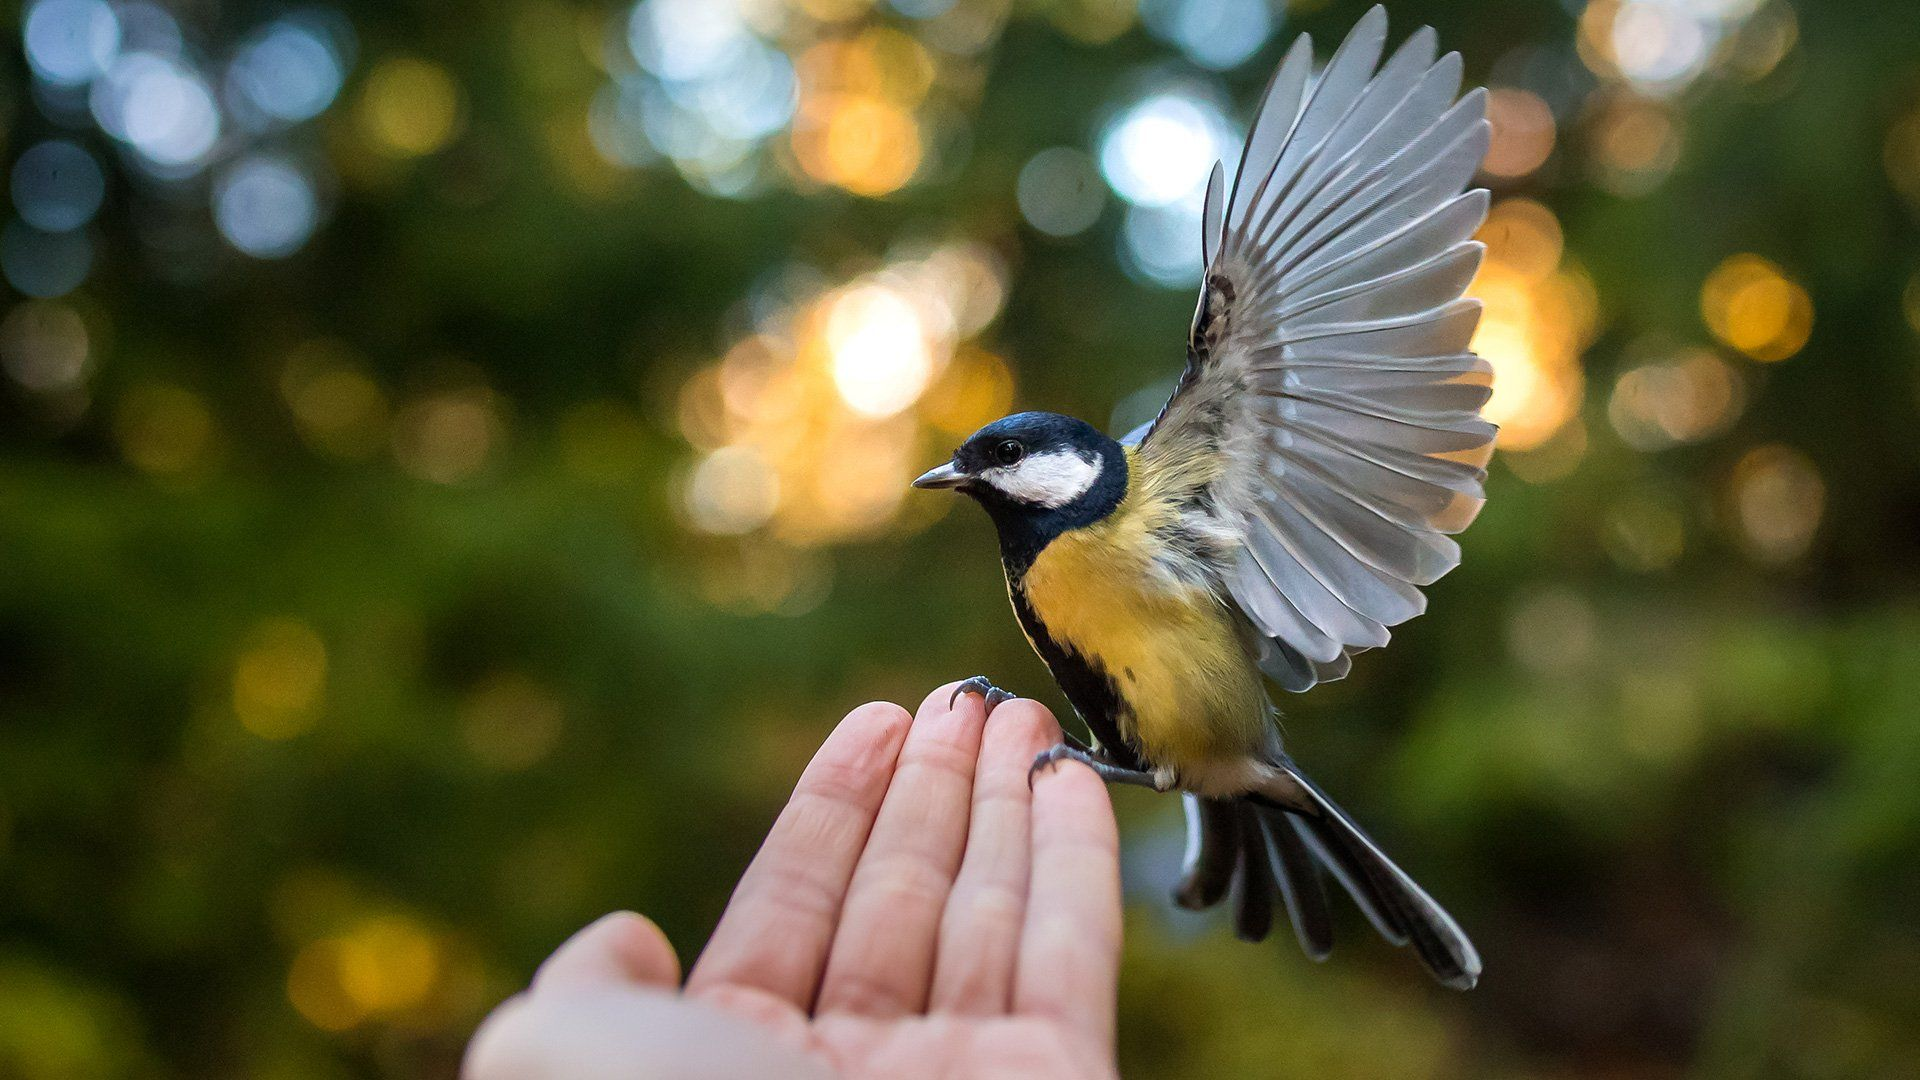 A small yellow bird perches on a hand in front of us, its wings outstretched.